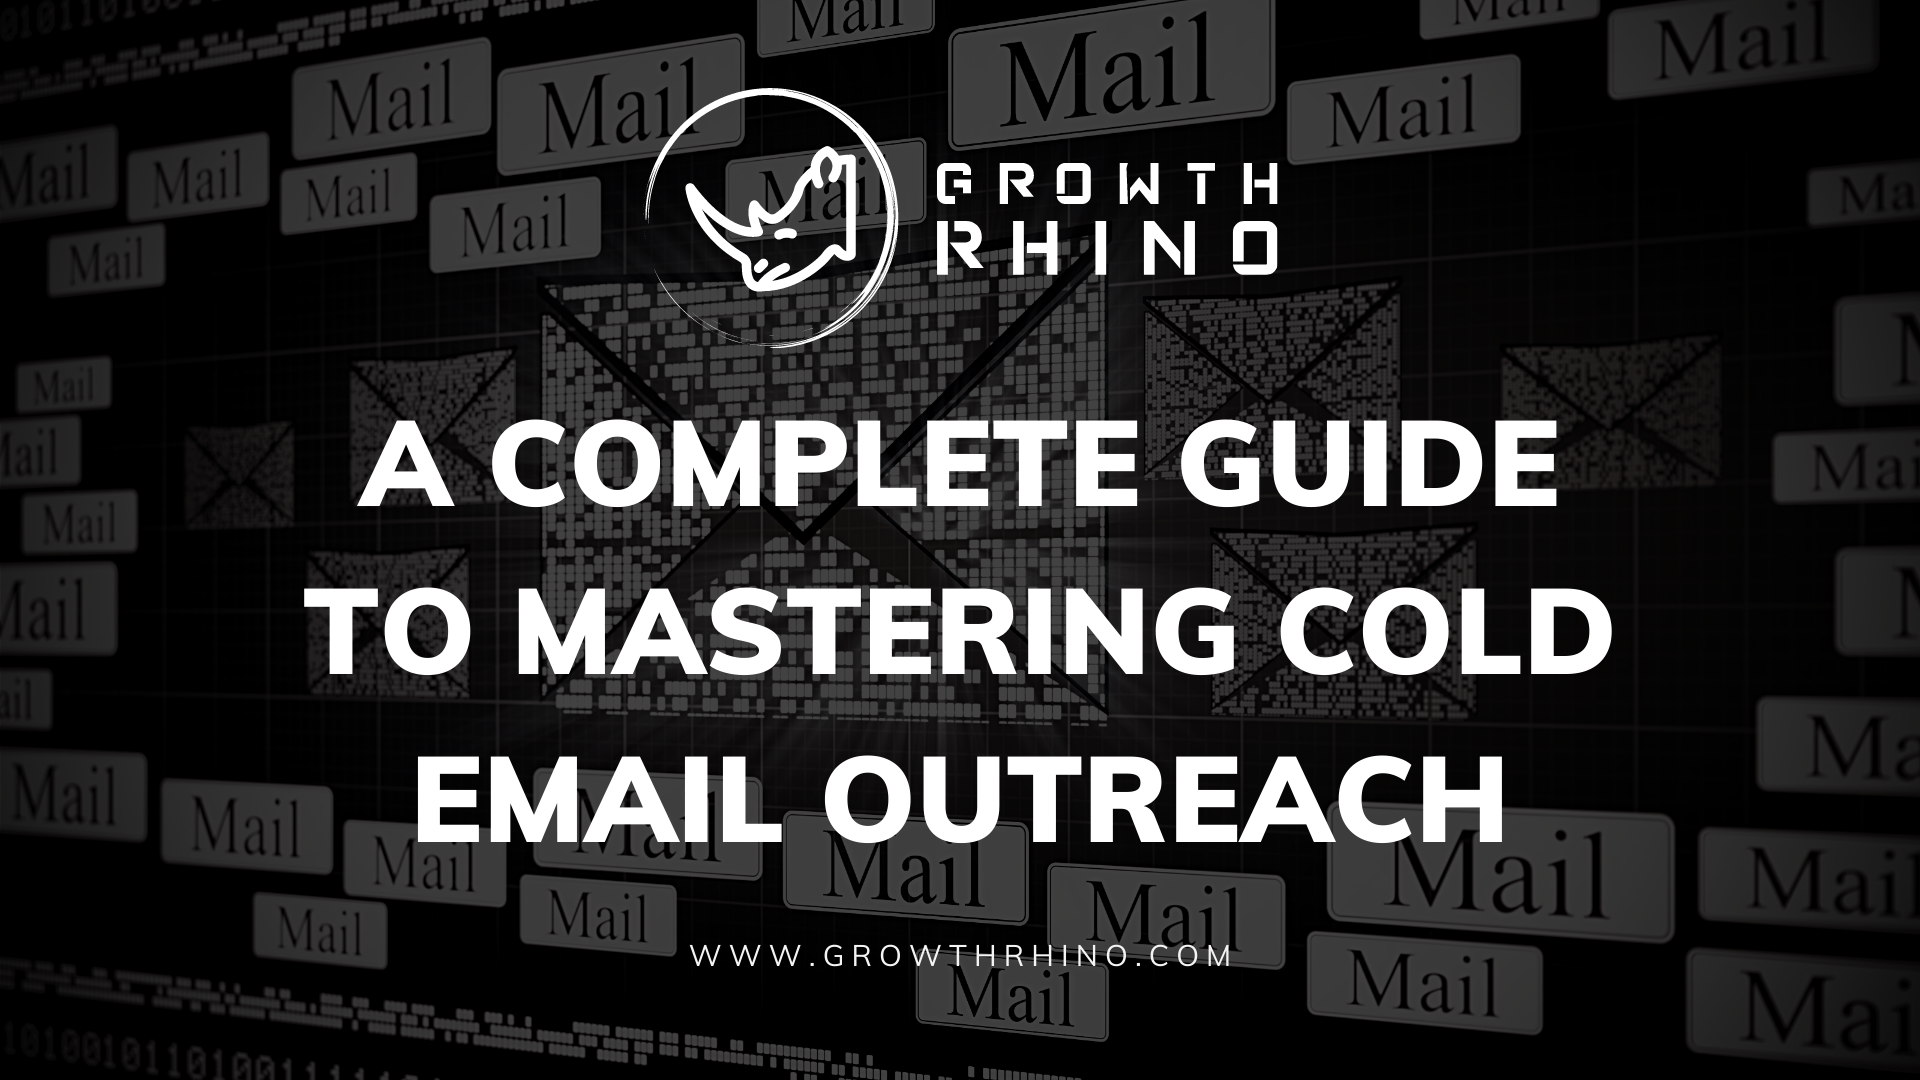 A Complete Guide to Mastering Cold Email Outreach